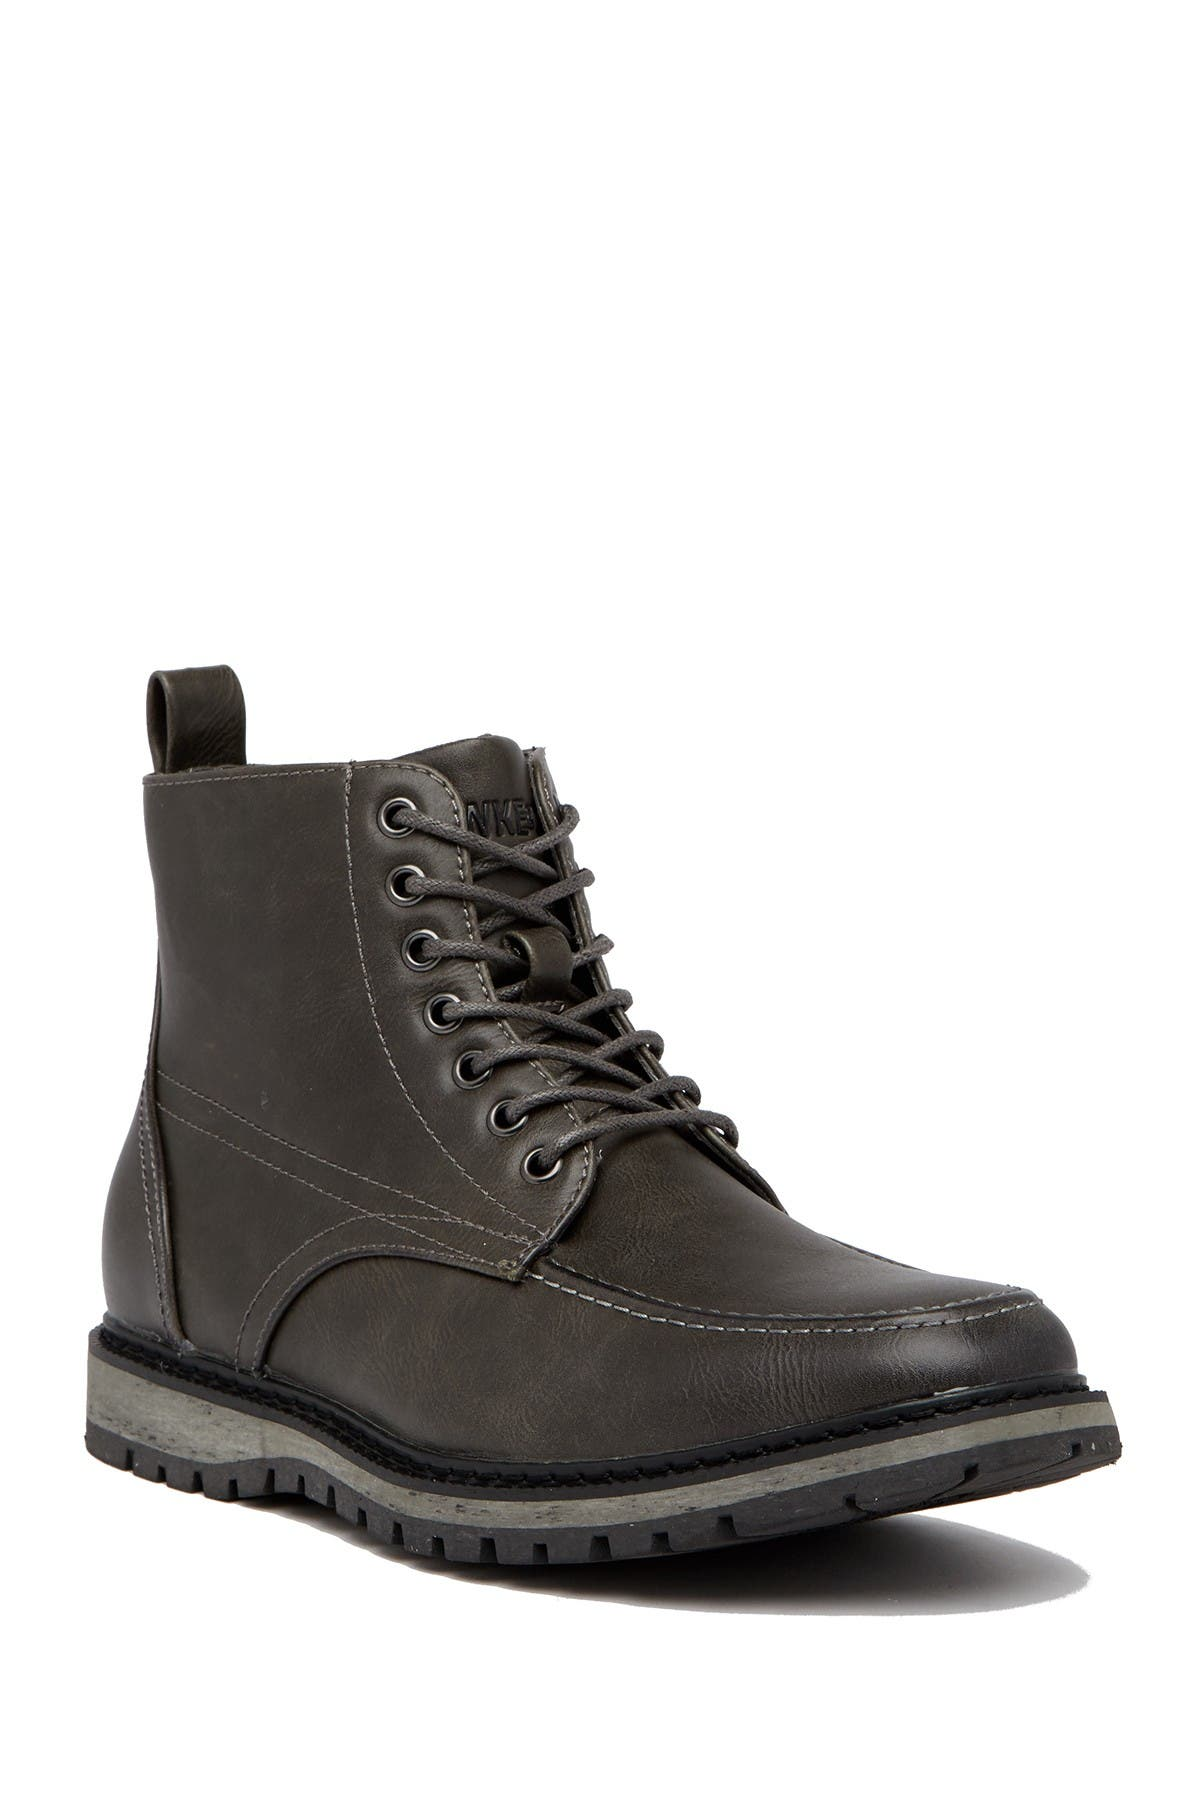 Image of Hawke & Co. Sierra Lace-Up Boot